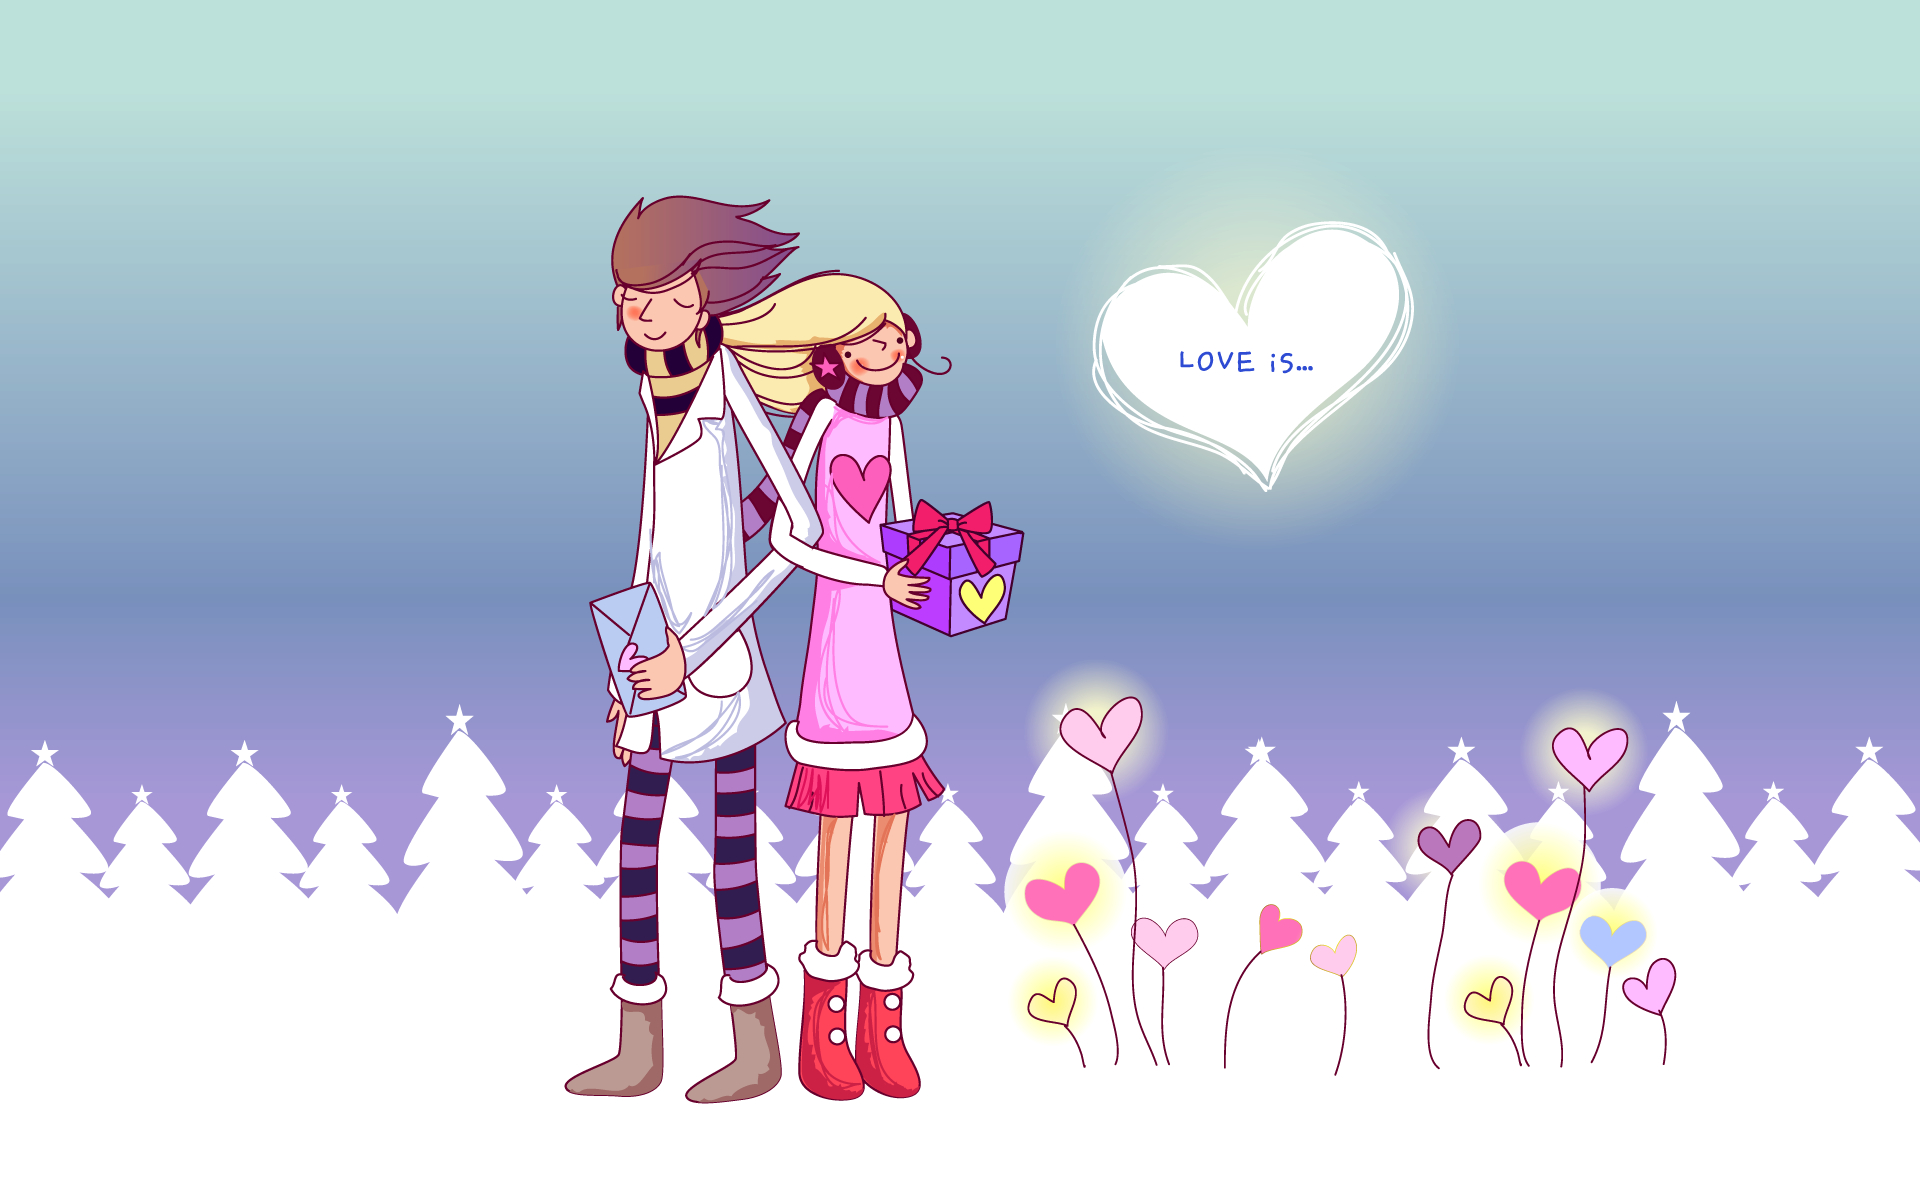 New Love cartoon Wallpaper : Love cartoon Image - Wallpaper, High Definition, High Quality, Widescreen